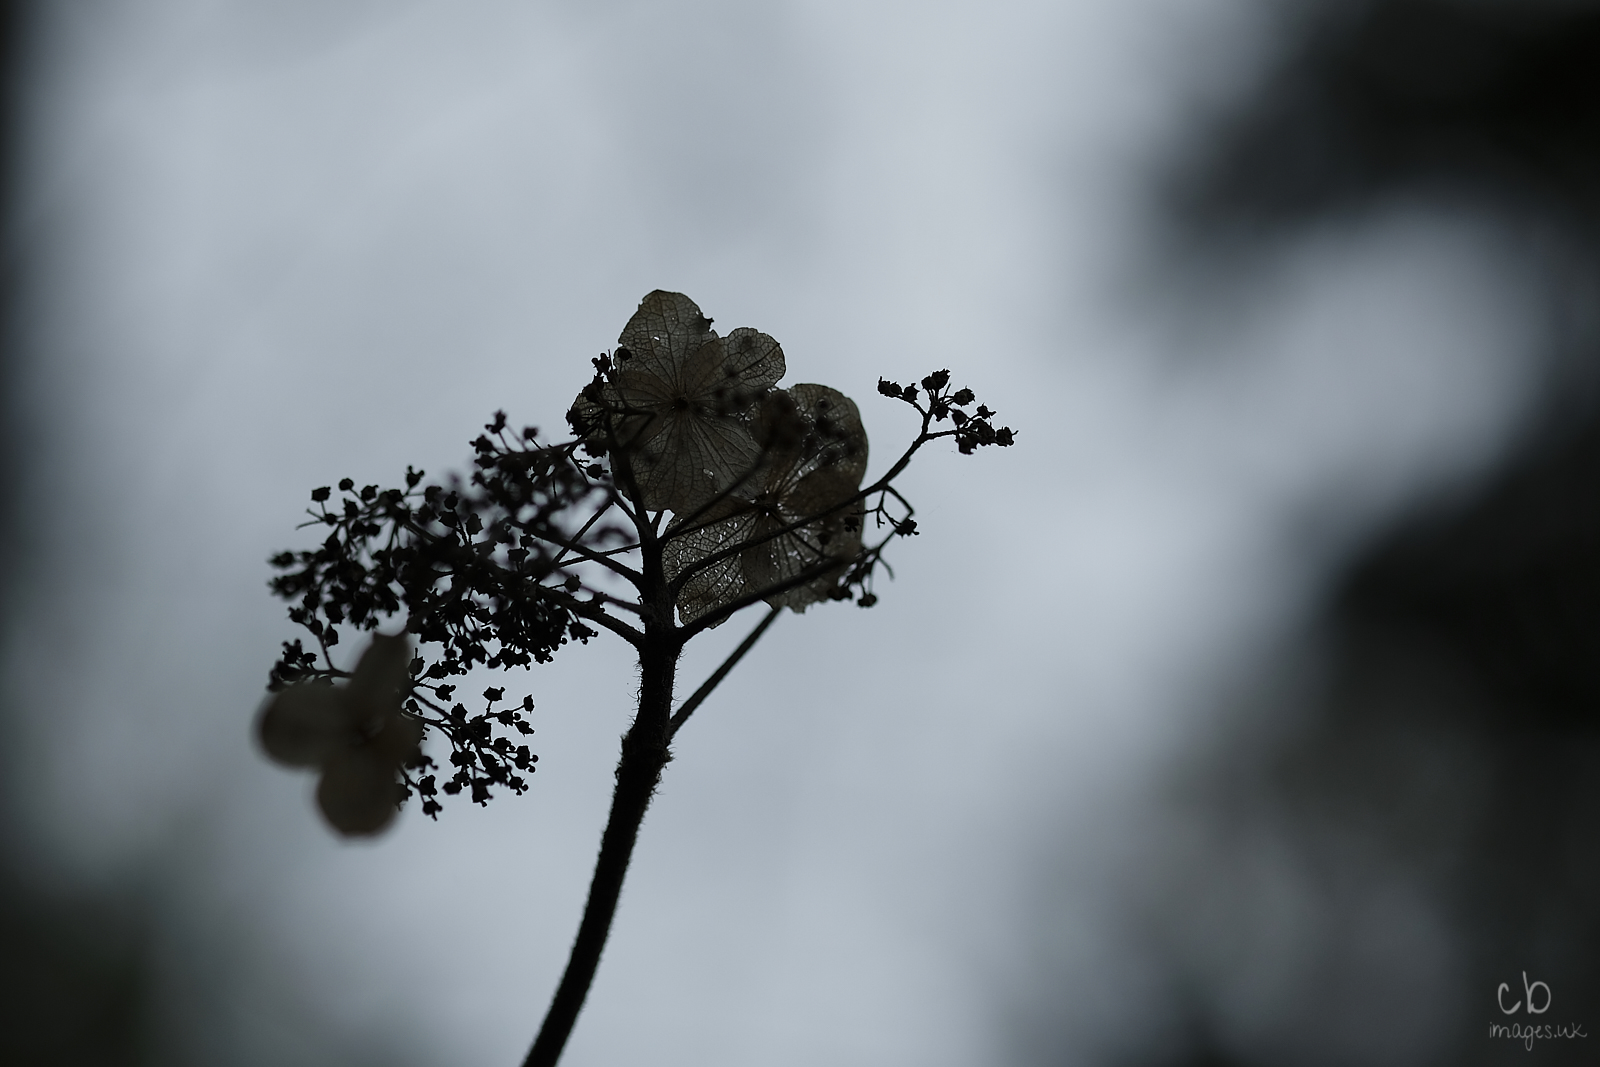 Dead flower in silhouette